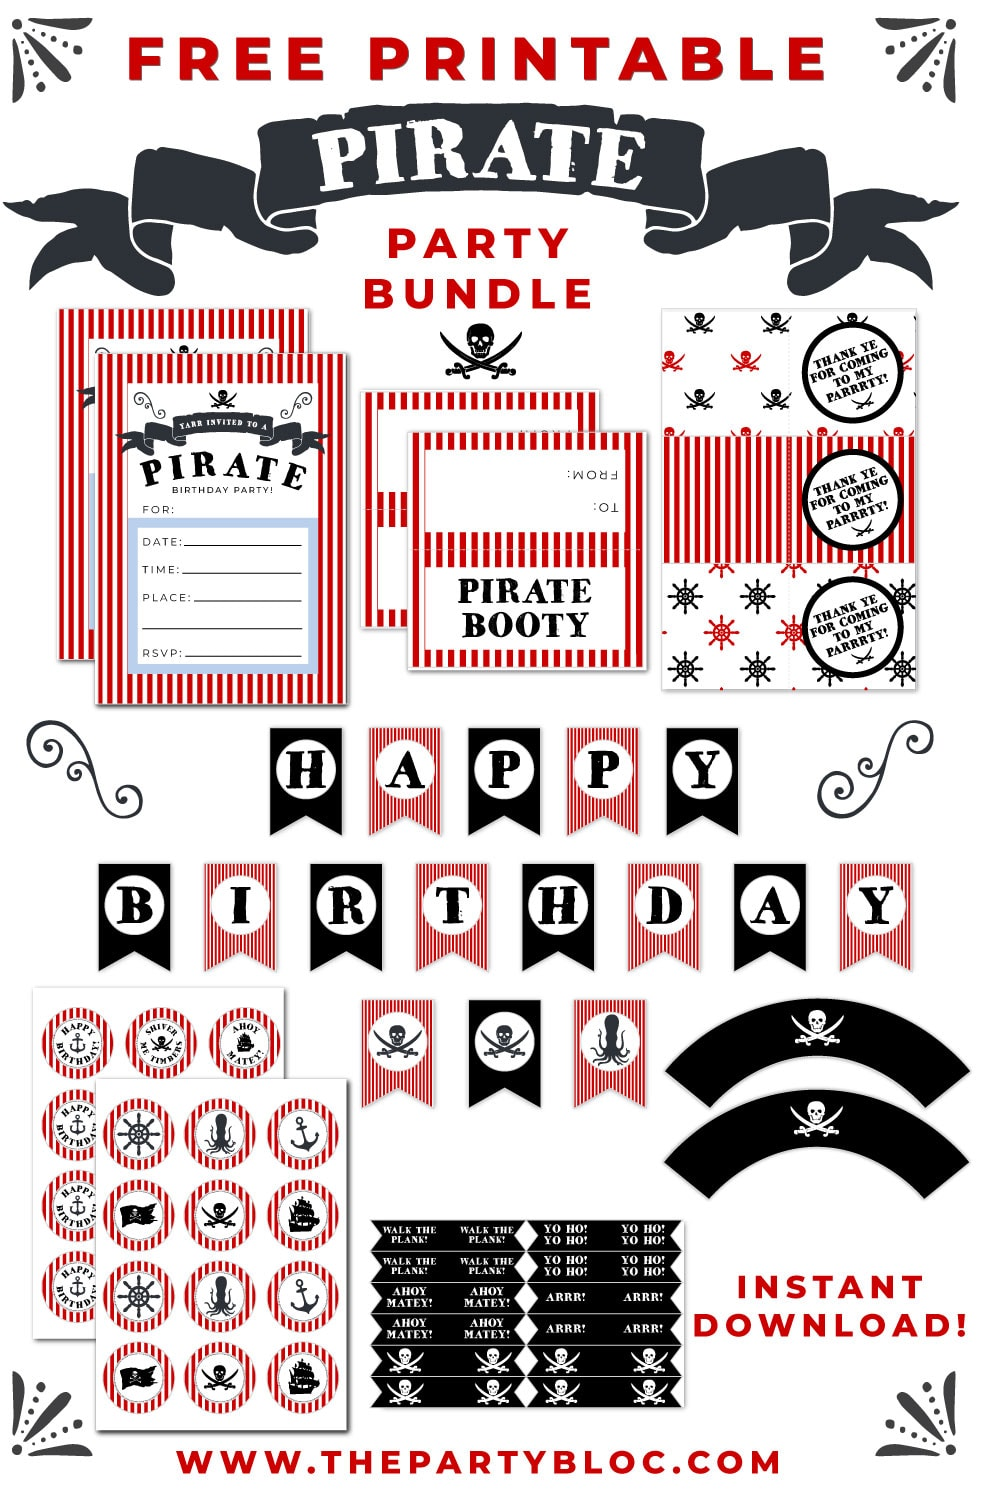 Free Pirate Birthday Party Printable Pack